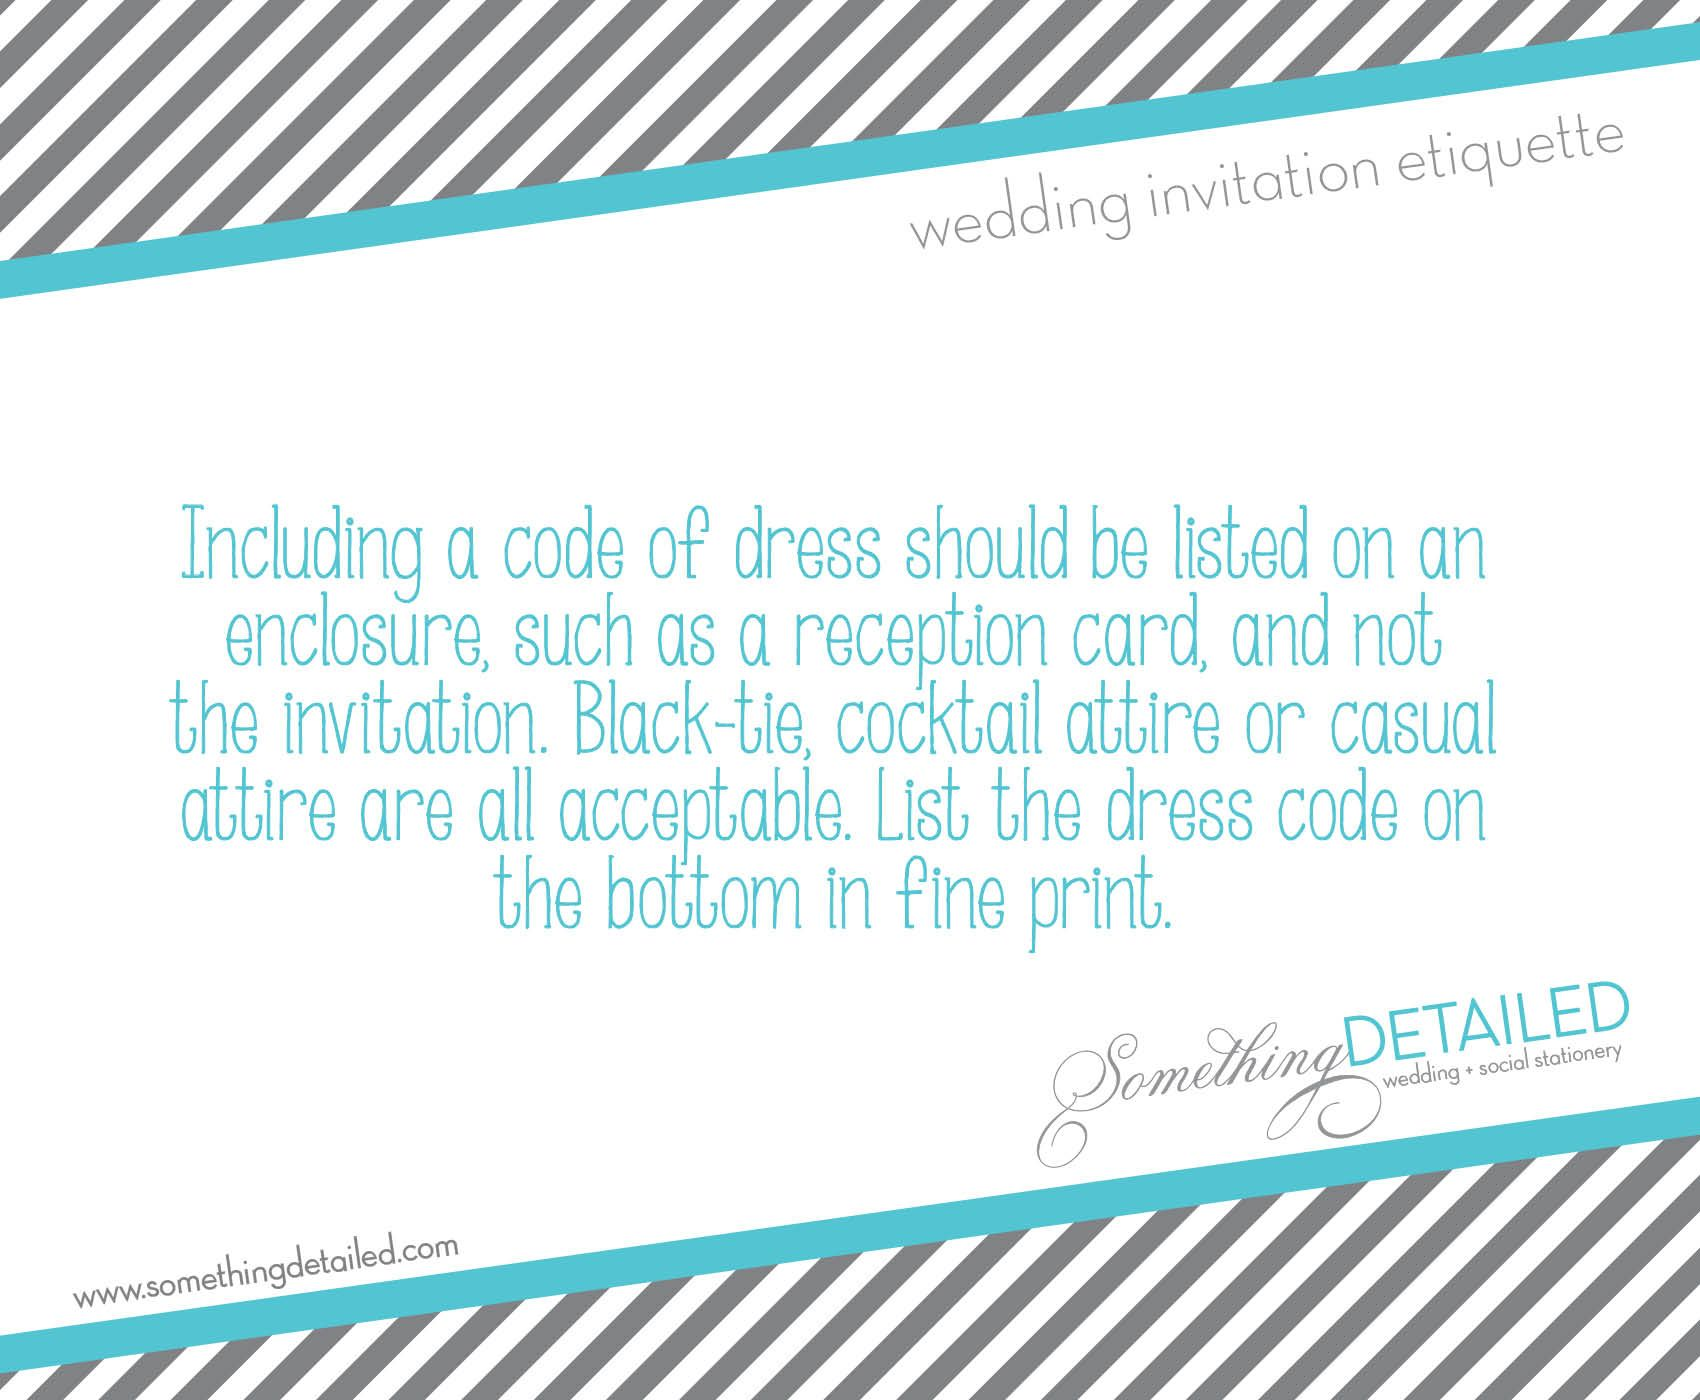 Wedding Invitation Etiquette Dress Code Dressy Casual Cocktail